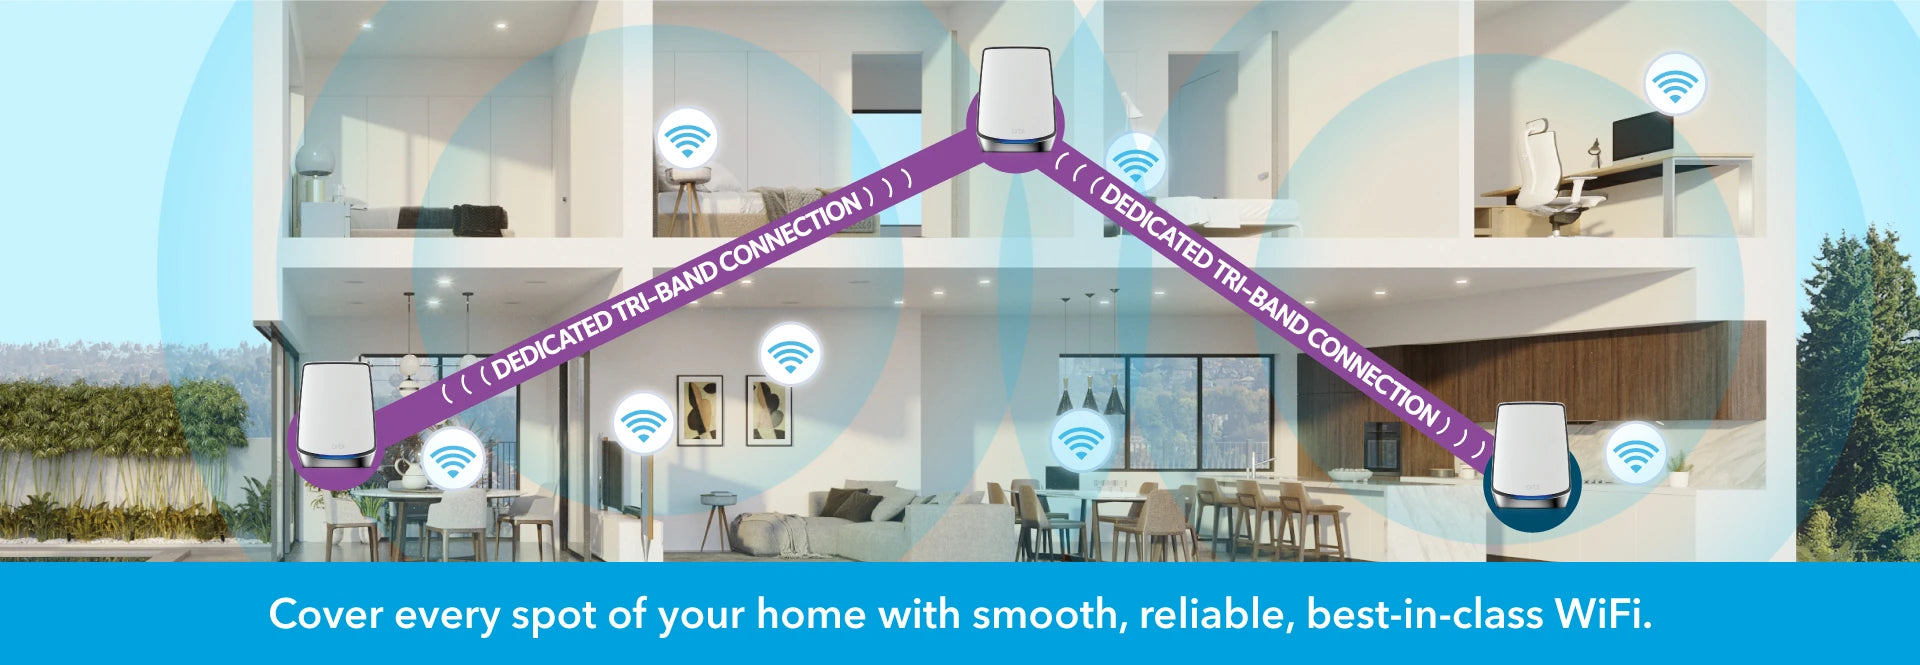 With Orbi Mesh dedicated backhaul streams, use the satellites to cover every inch of your home with smooth, reliable, best-in-class WiFi